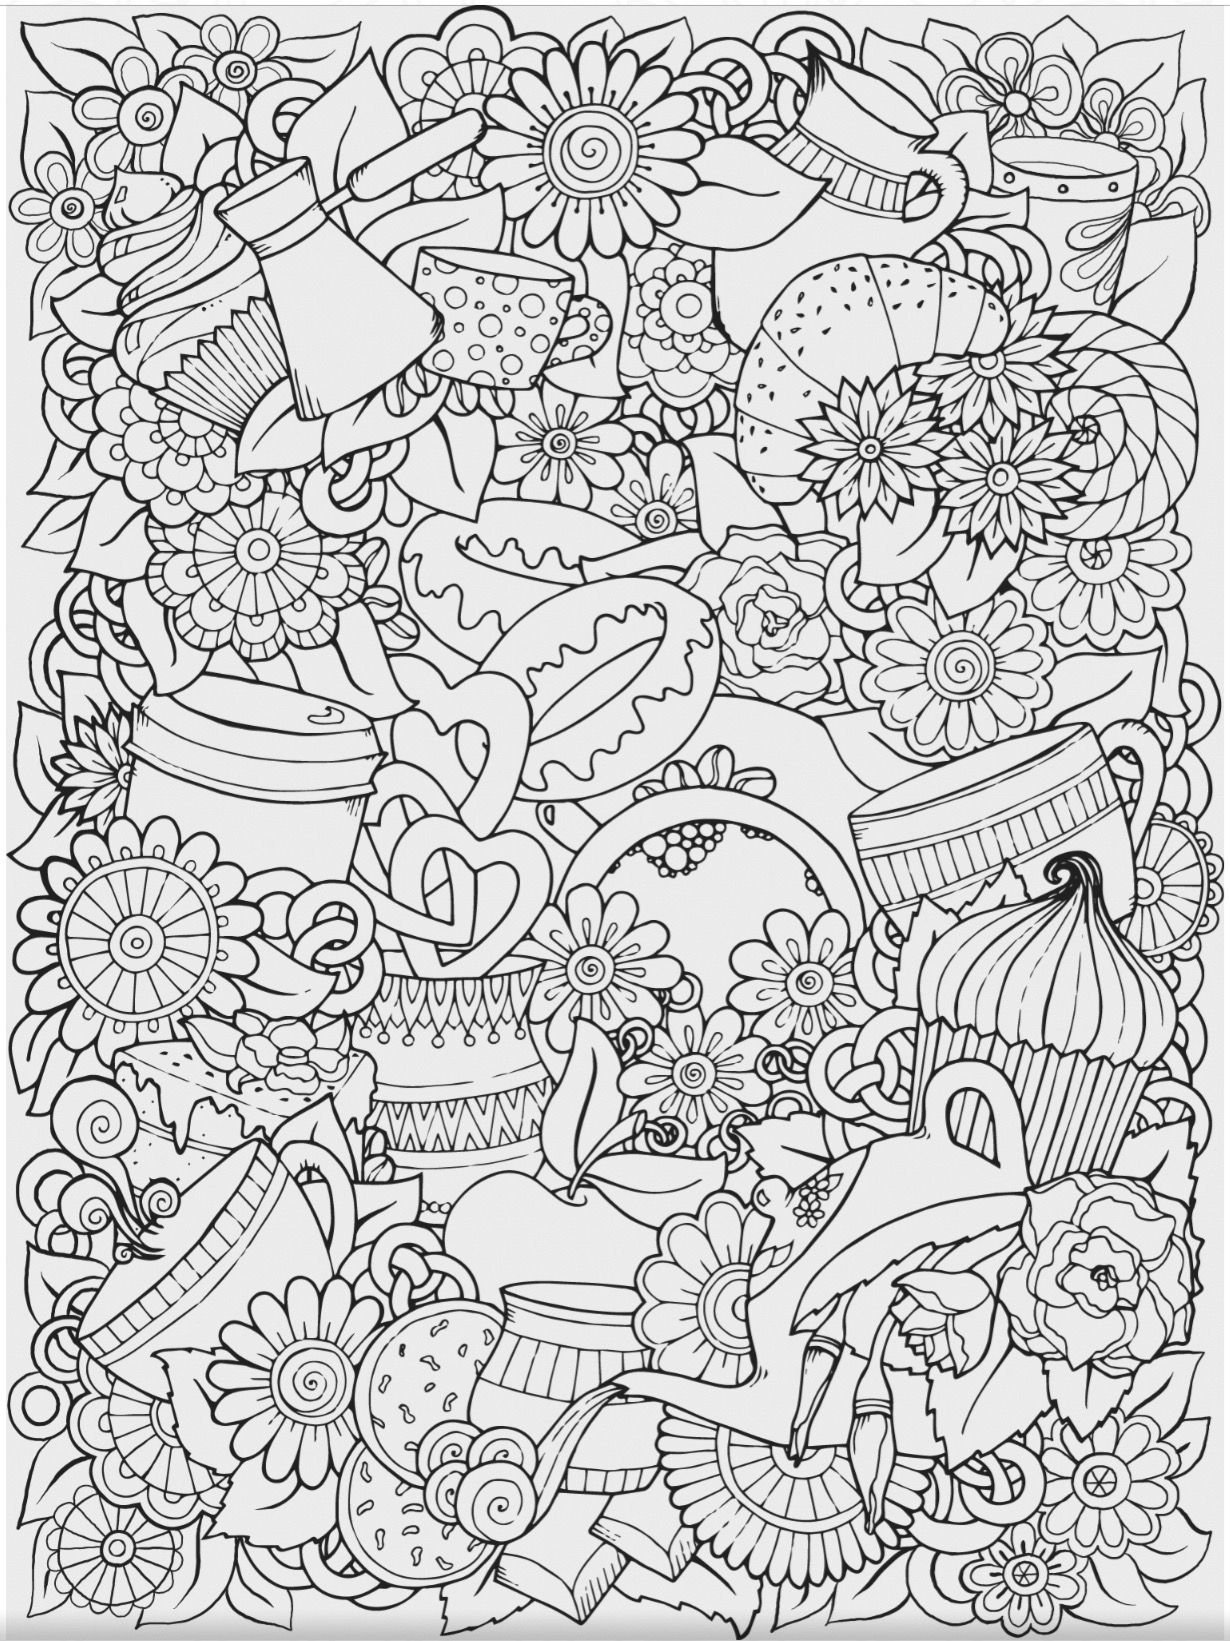 free printable coloring pages for adults and kids pin by carol ratliff on coloring x5 coloring pages printable adults kids free for coloring pages and